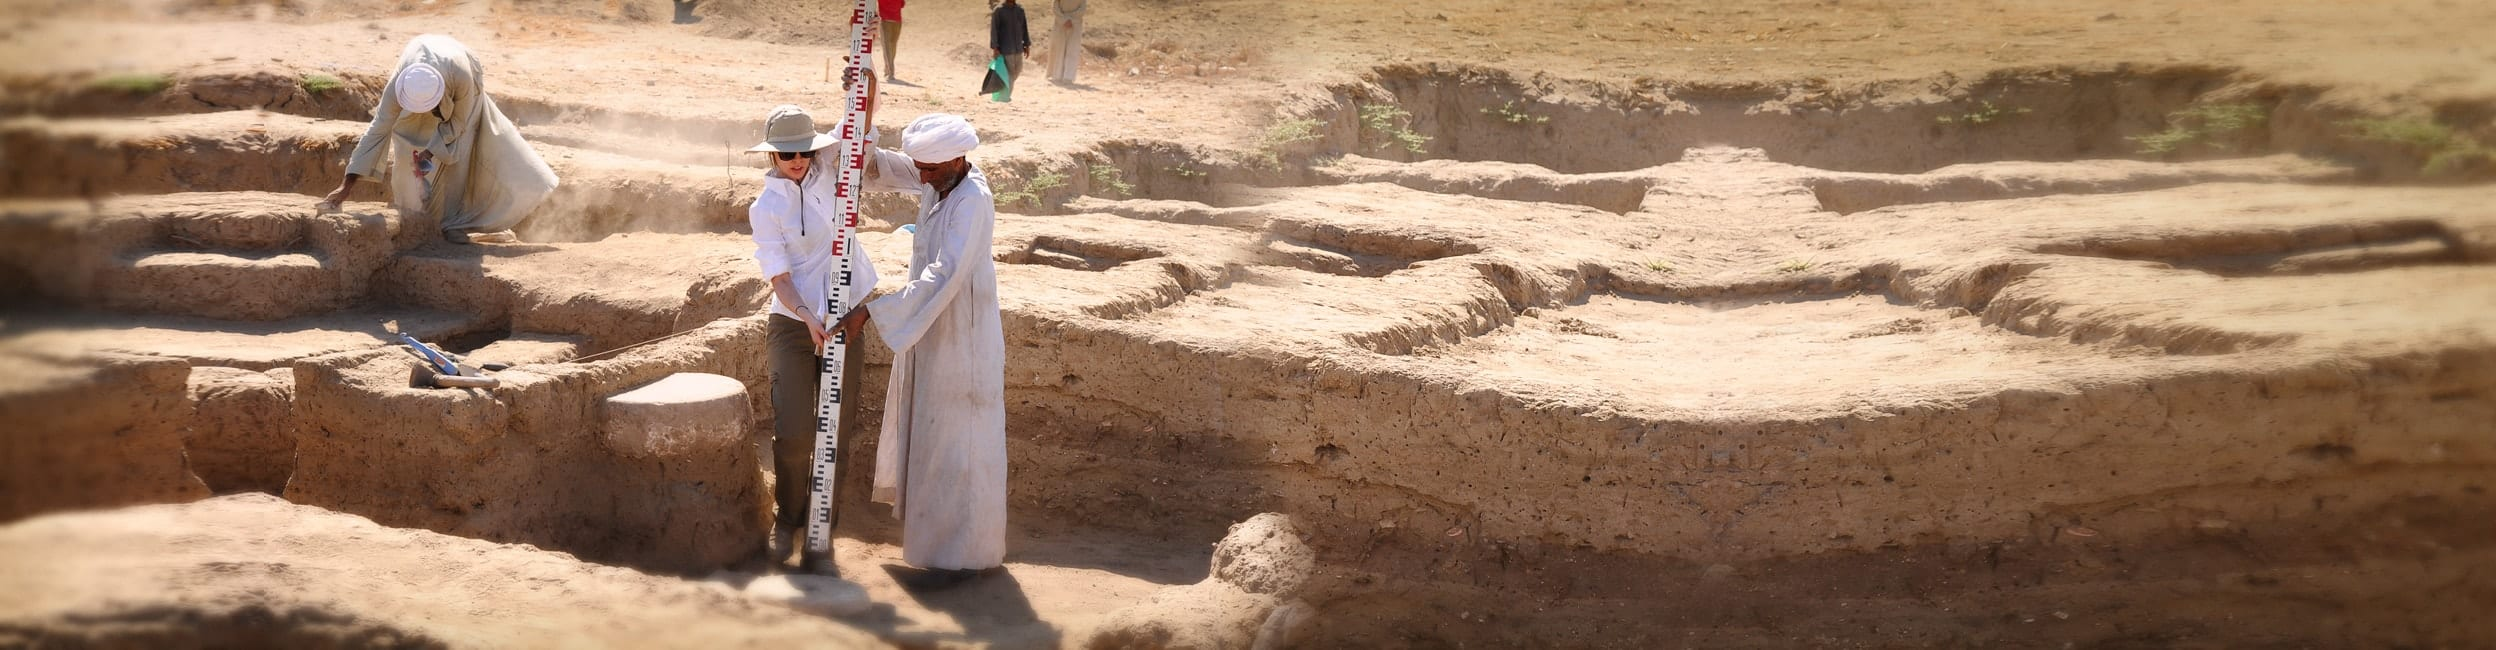 A team of Johns Hopkins researchers and students, led by Prof. Betsy Bryan, conducts fieldwork at the Temple of the Goddess Mut dig site in Luxor, Egypt.